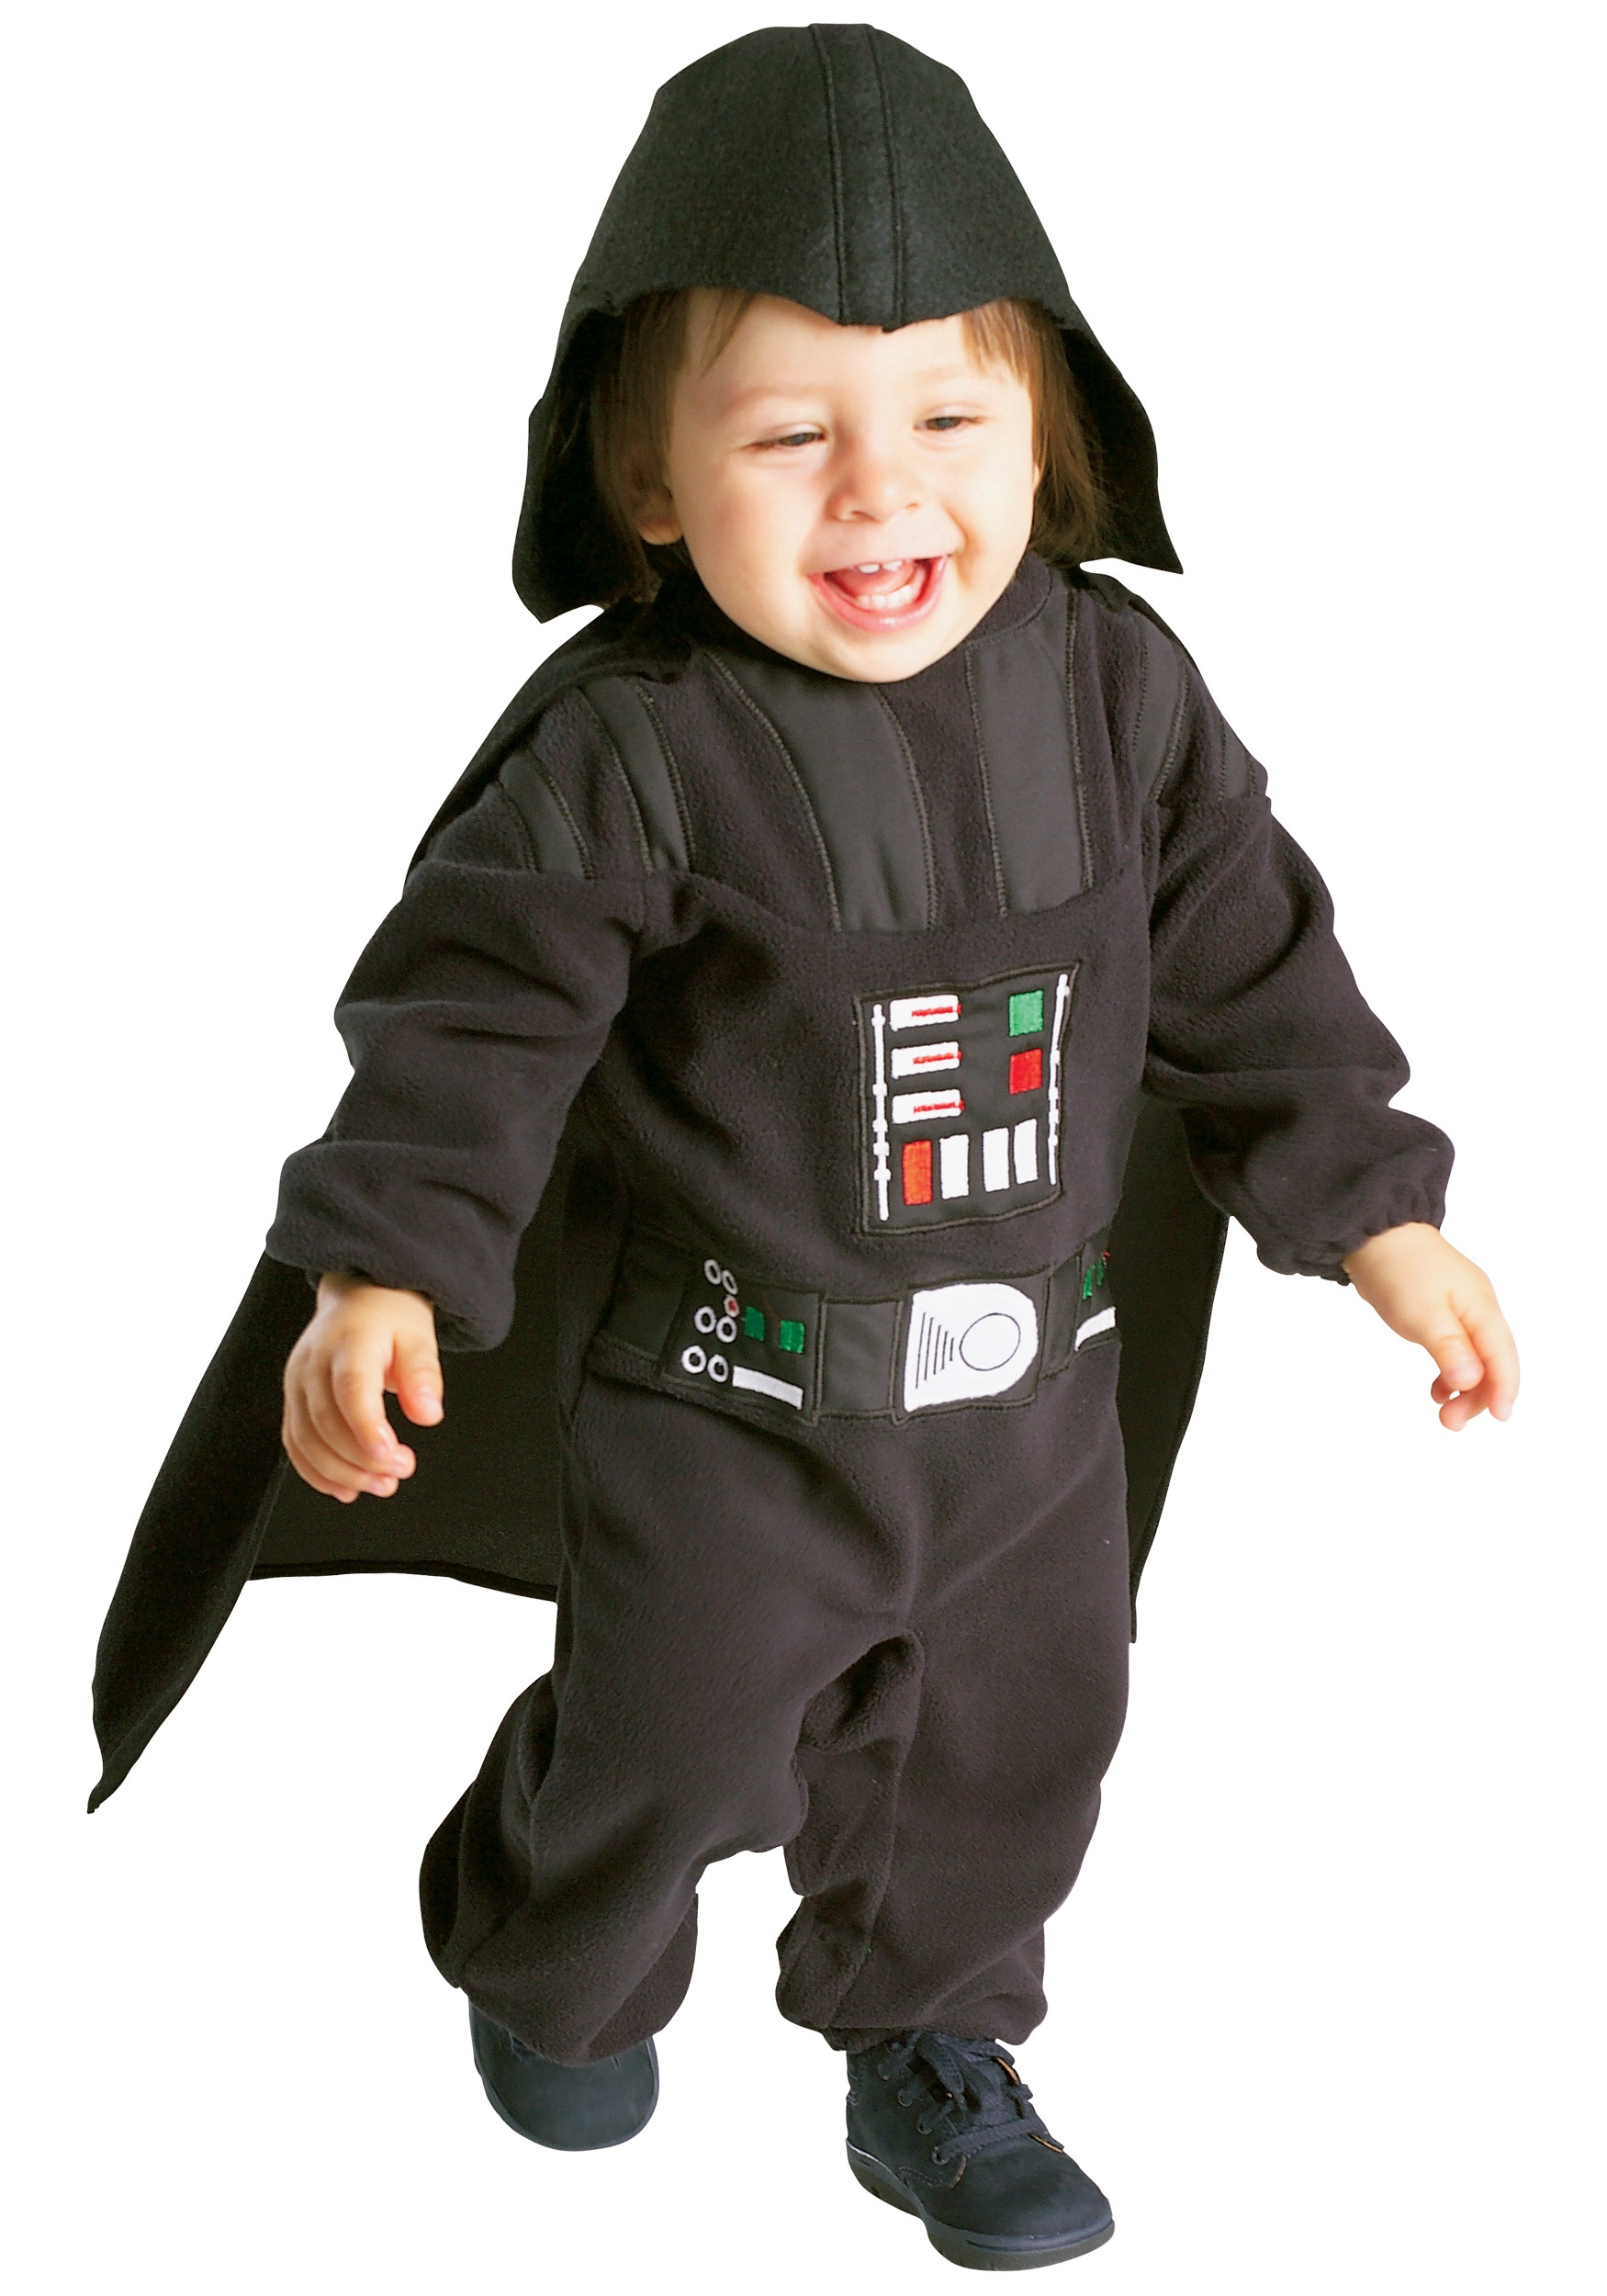 Toddler Darth Vader Costume  sc 1 st  Halloween Costume & Darth Vader Toddler Costume - Star Wars Baby Darth Vader Costumes